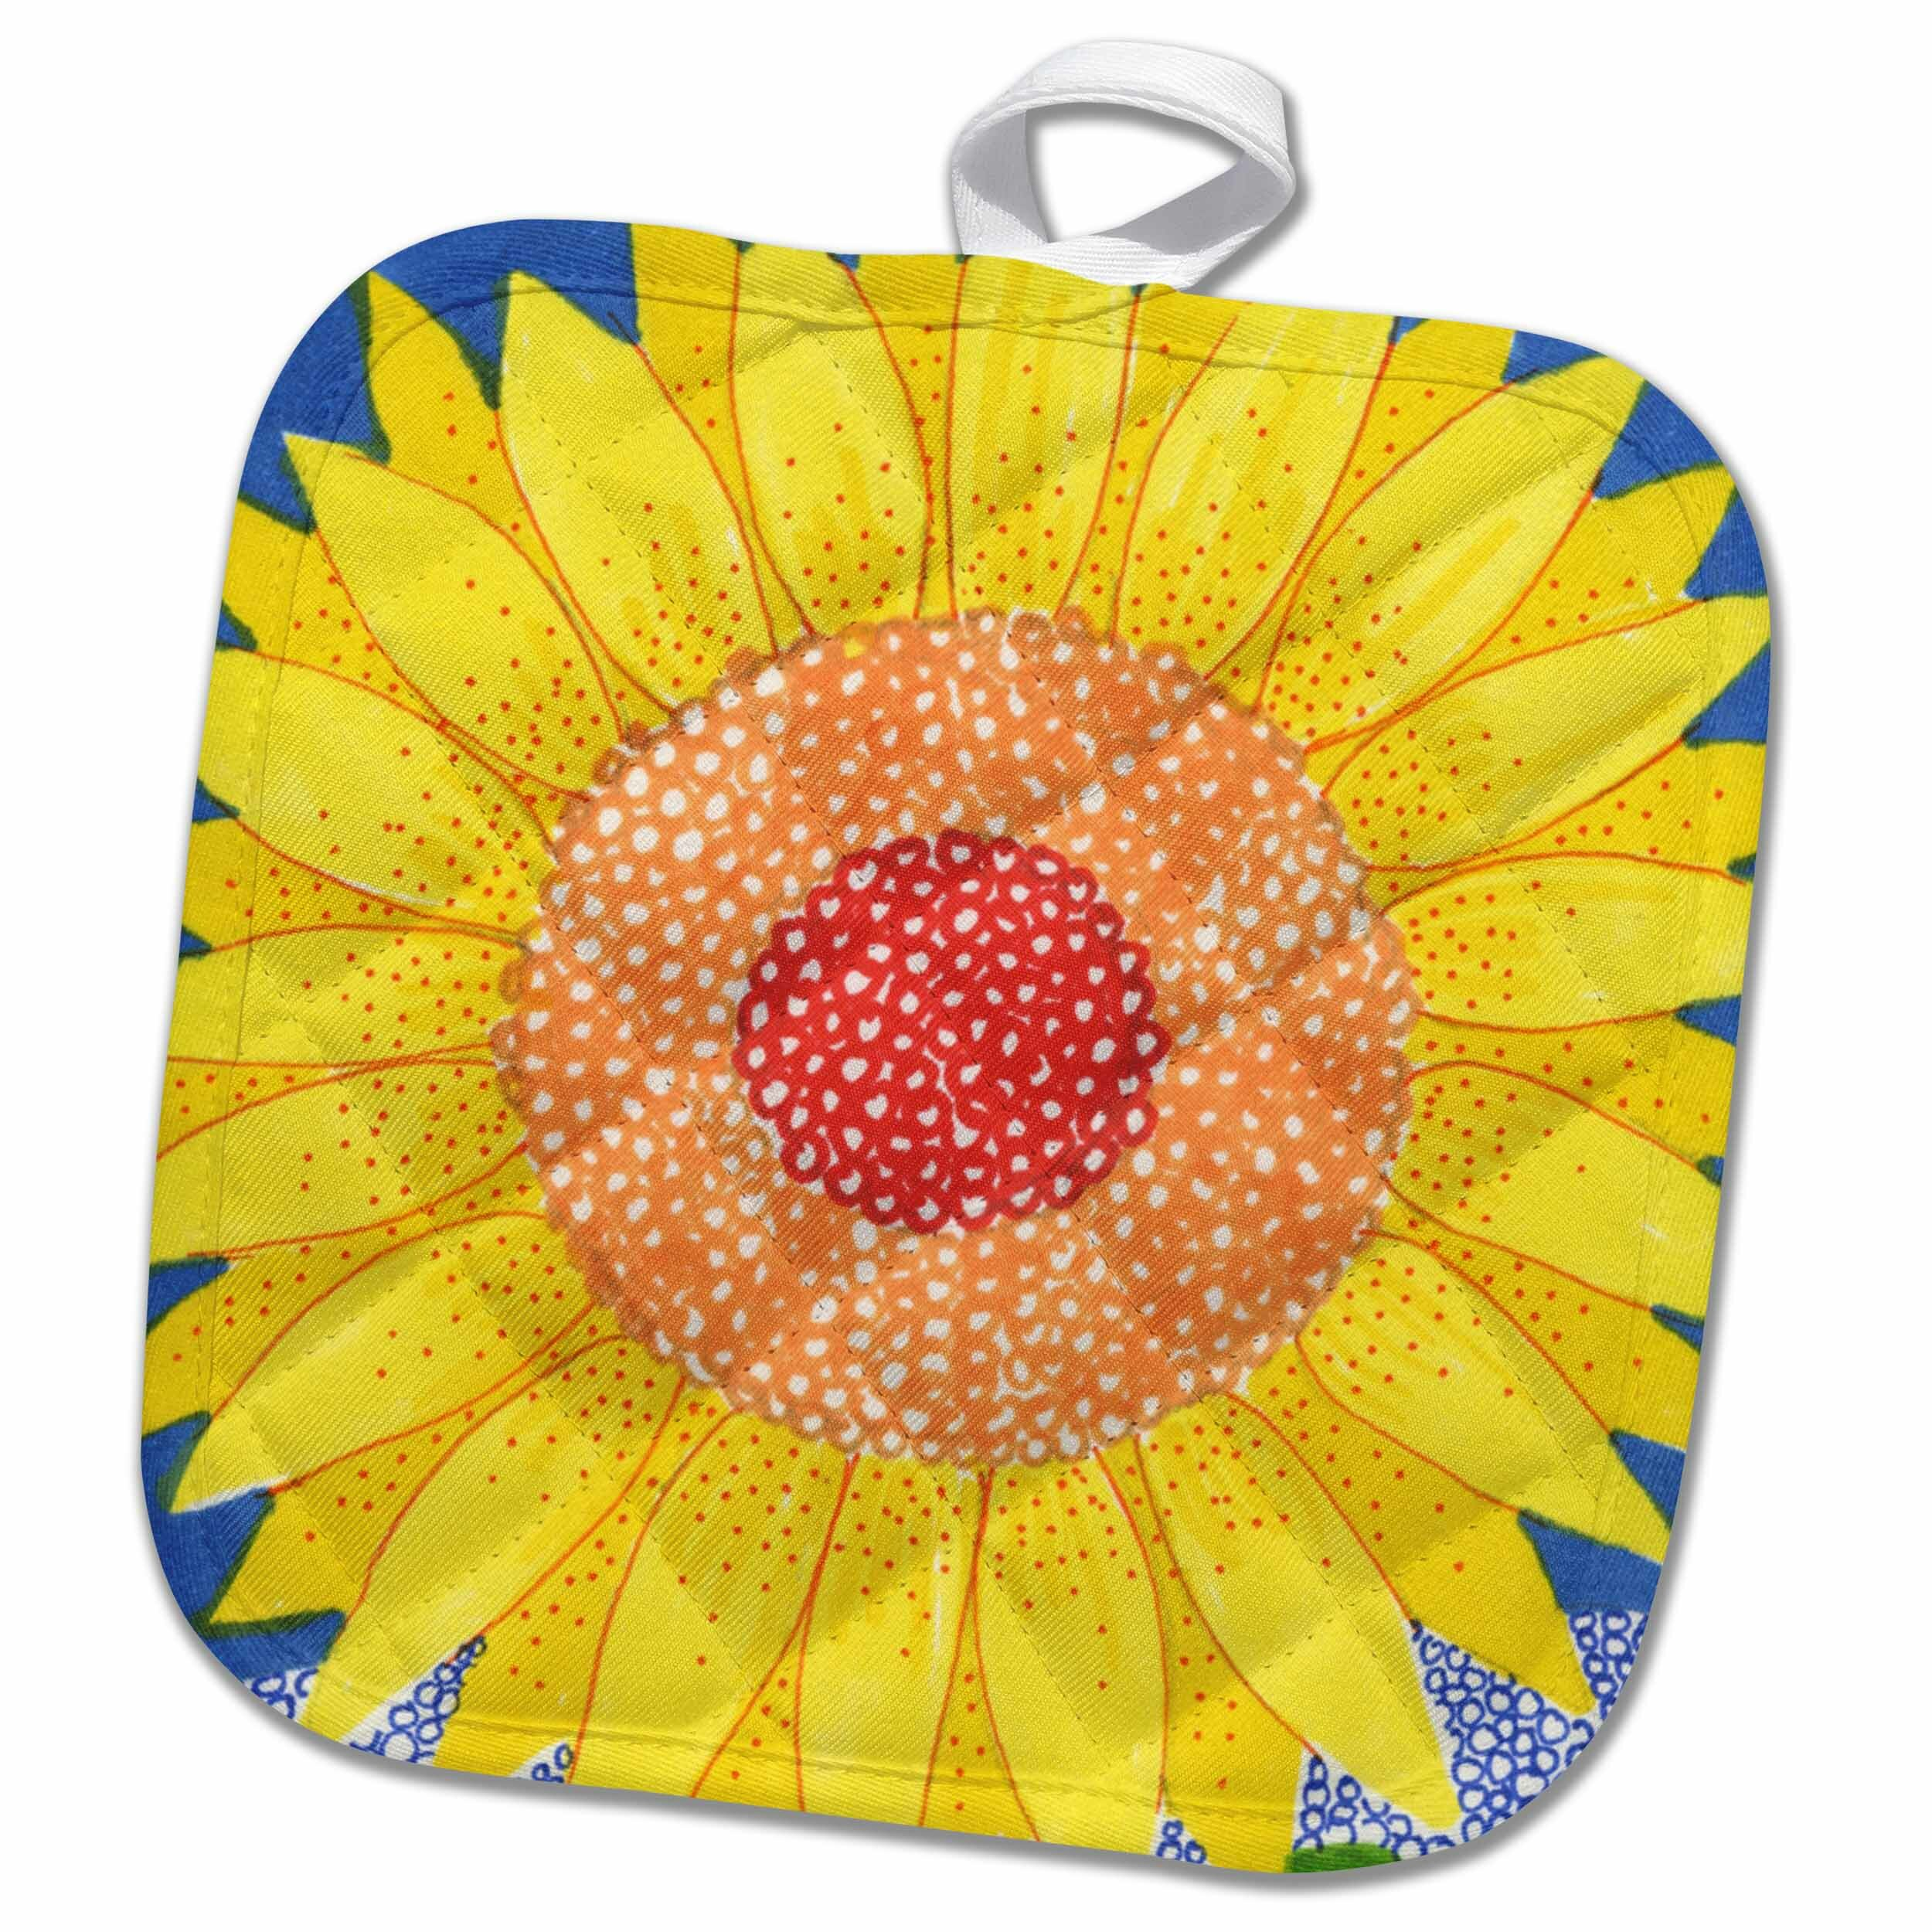 3drose Sunflower Bright Potholder Wayfair